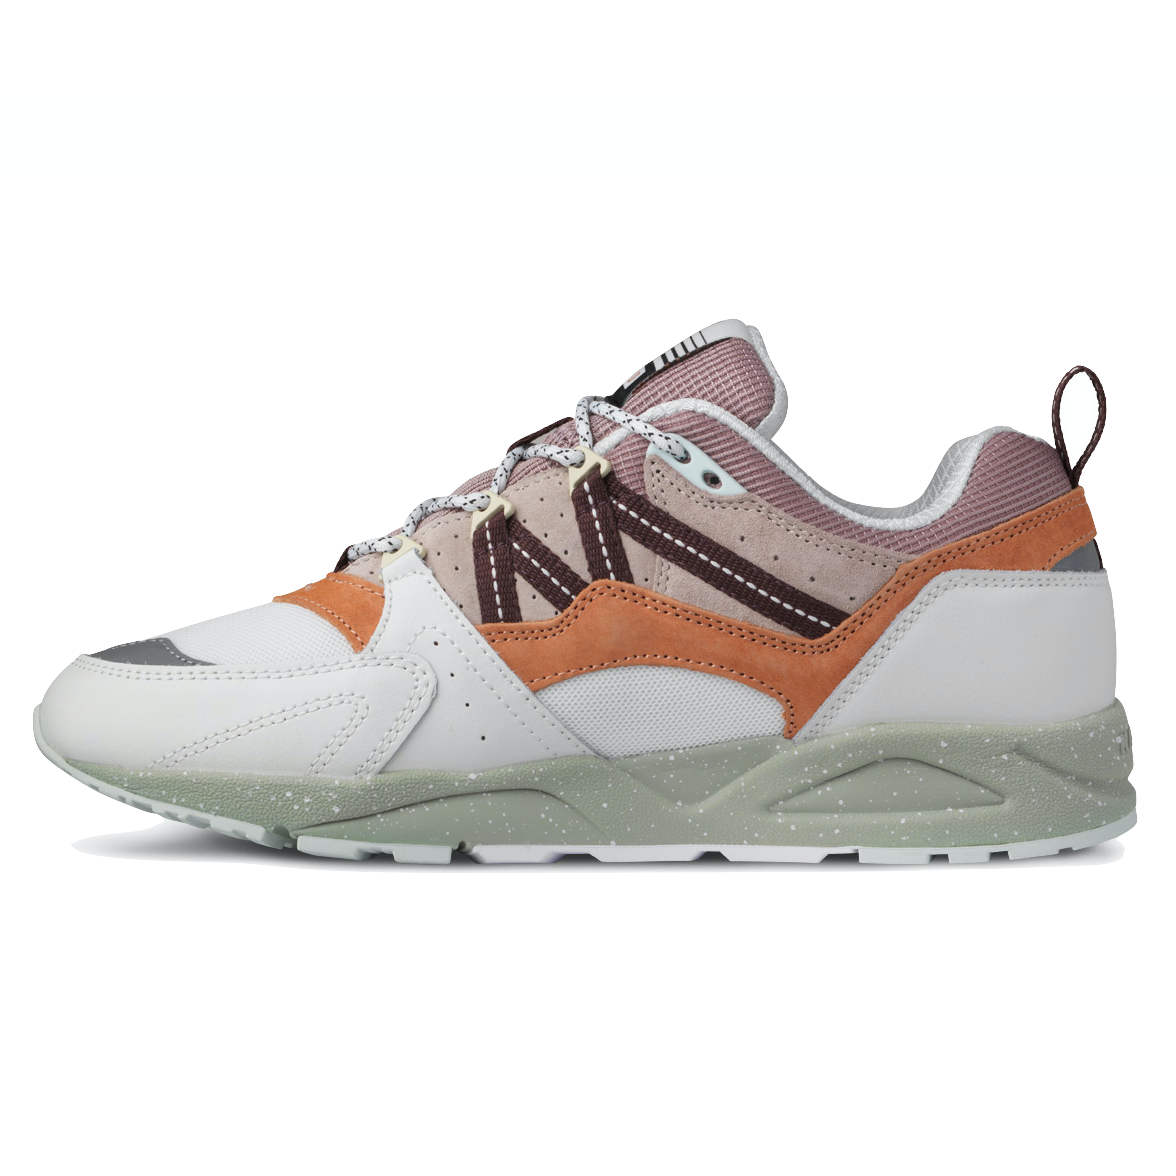 karhu-fusion-2-0-speckled-pack-bright-white-pheasant-side-2